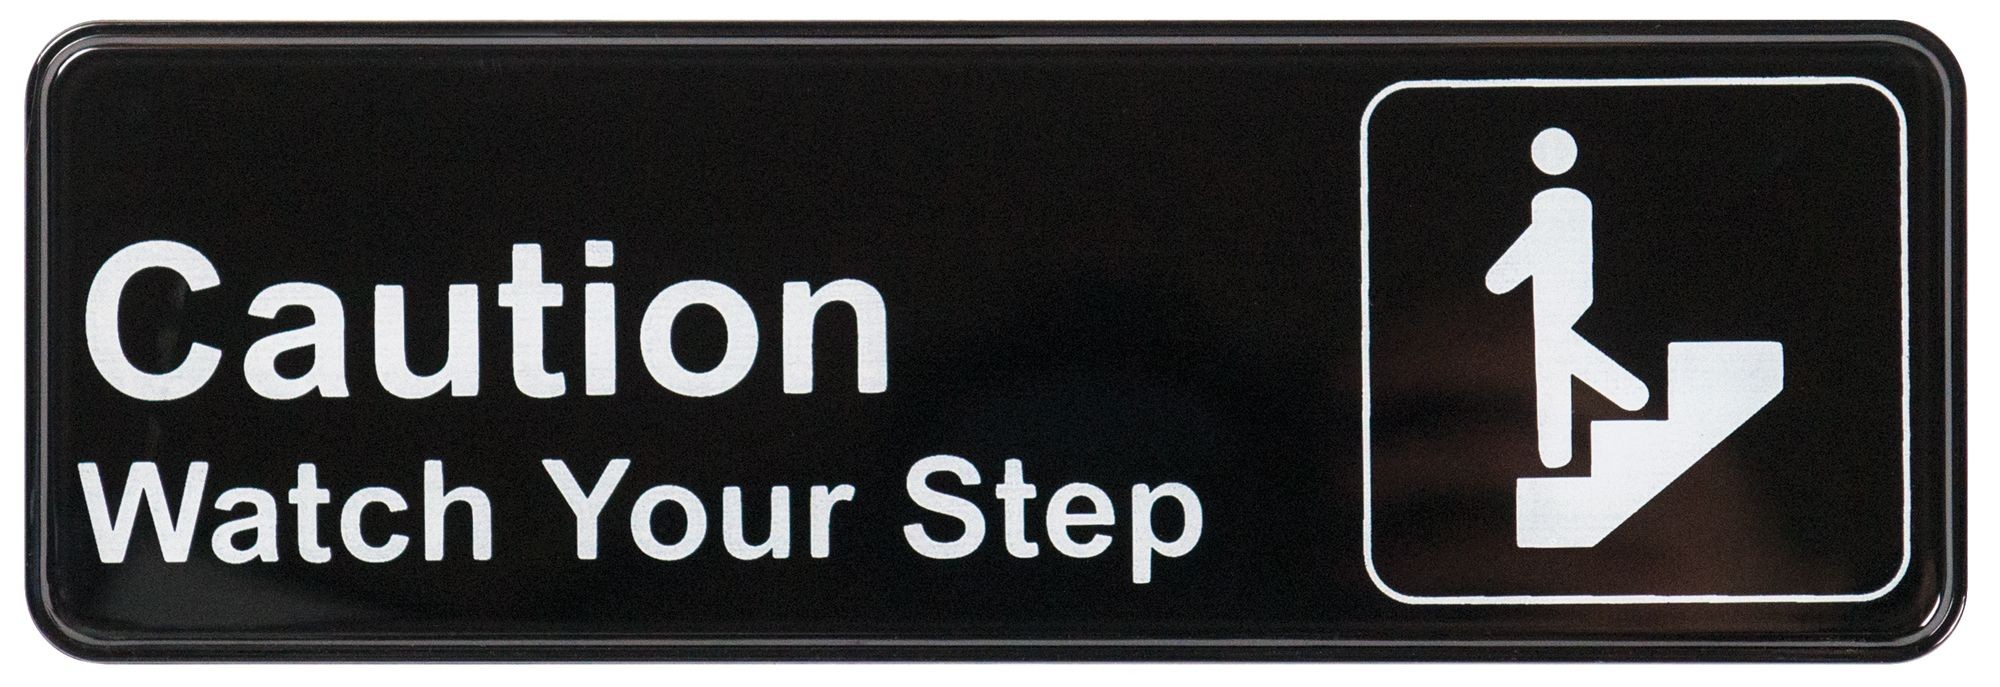 "Winco SGN-326 ""Caution Watch Your Step"" Informational Sign, 9"" x 3"""